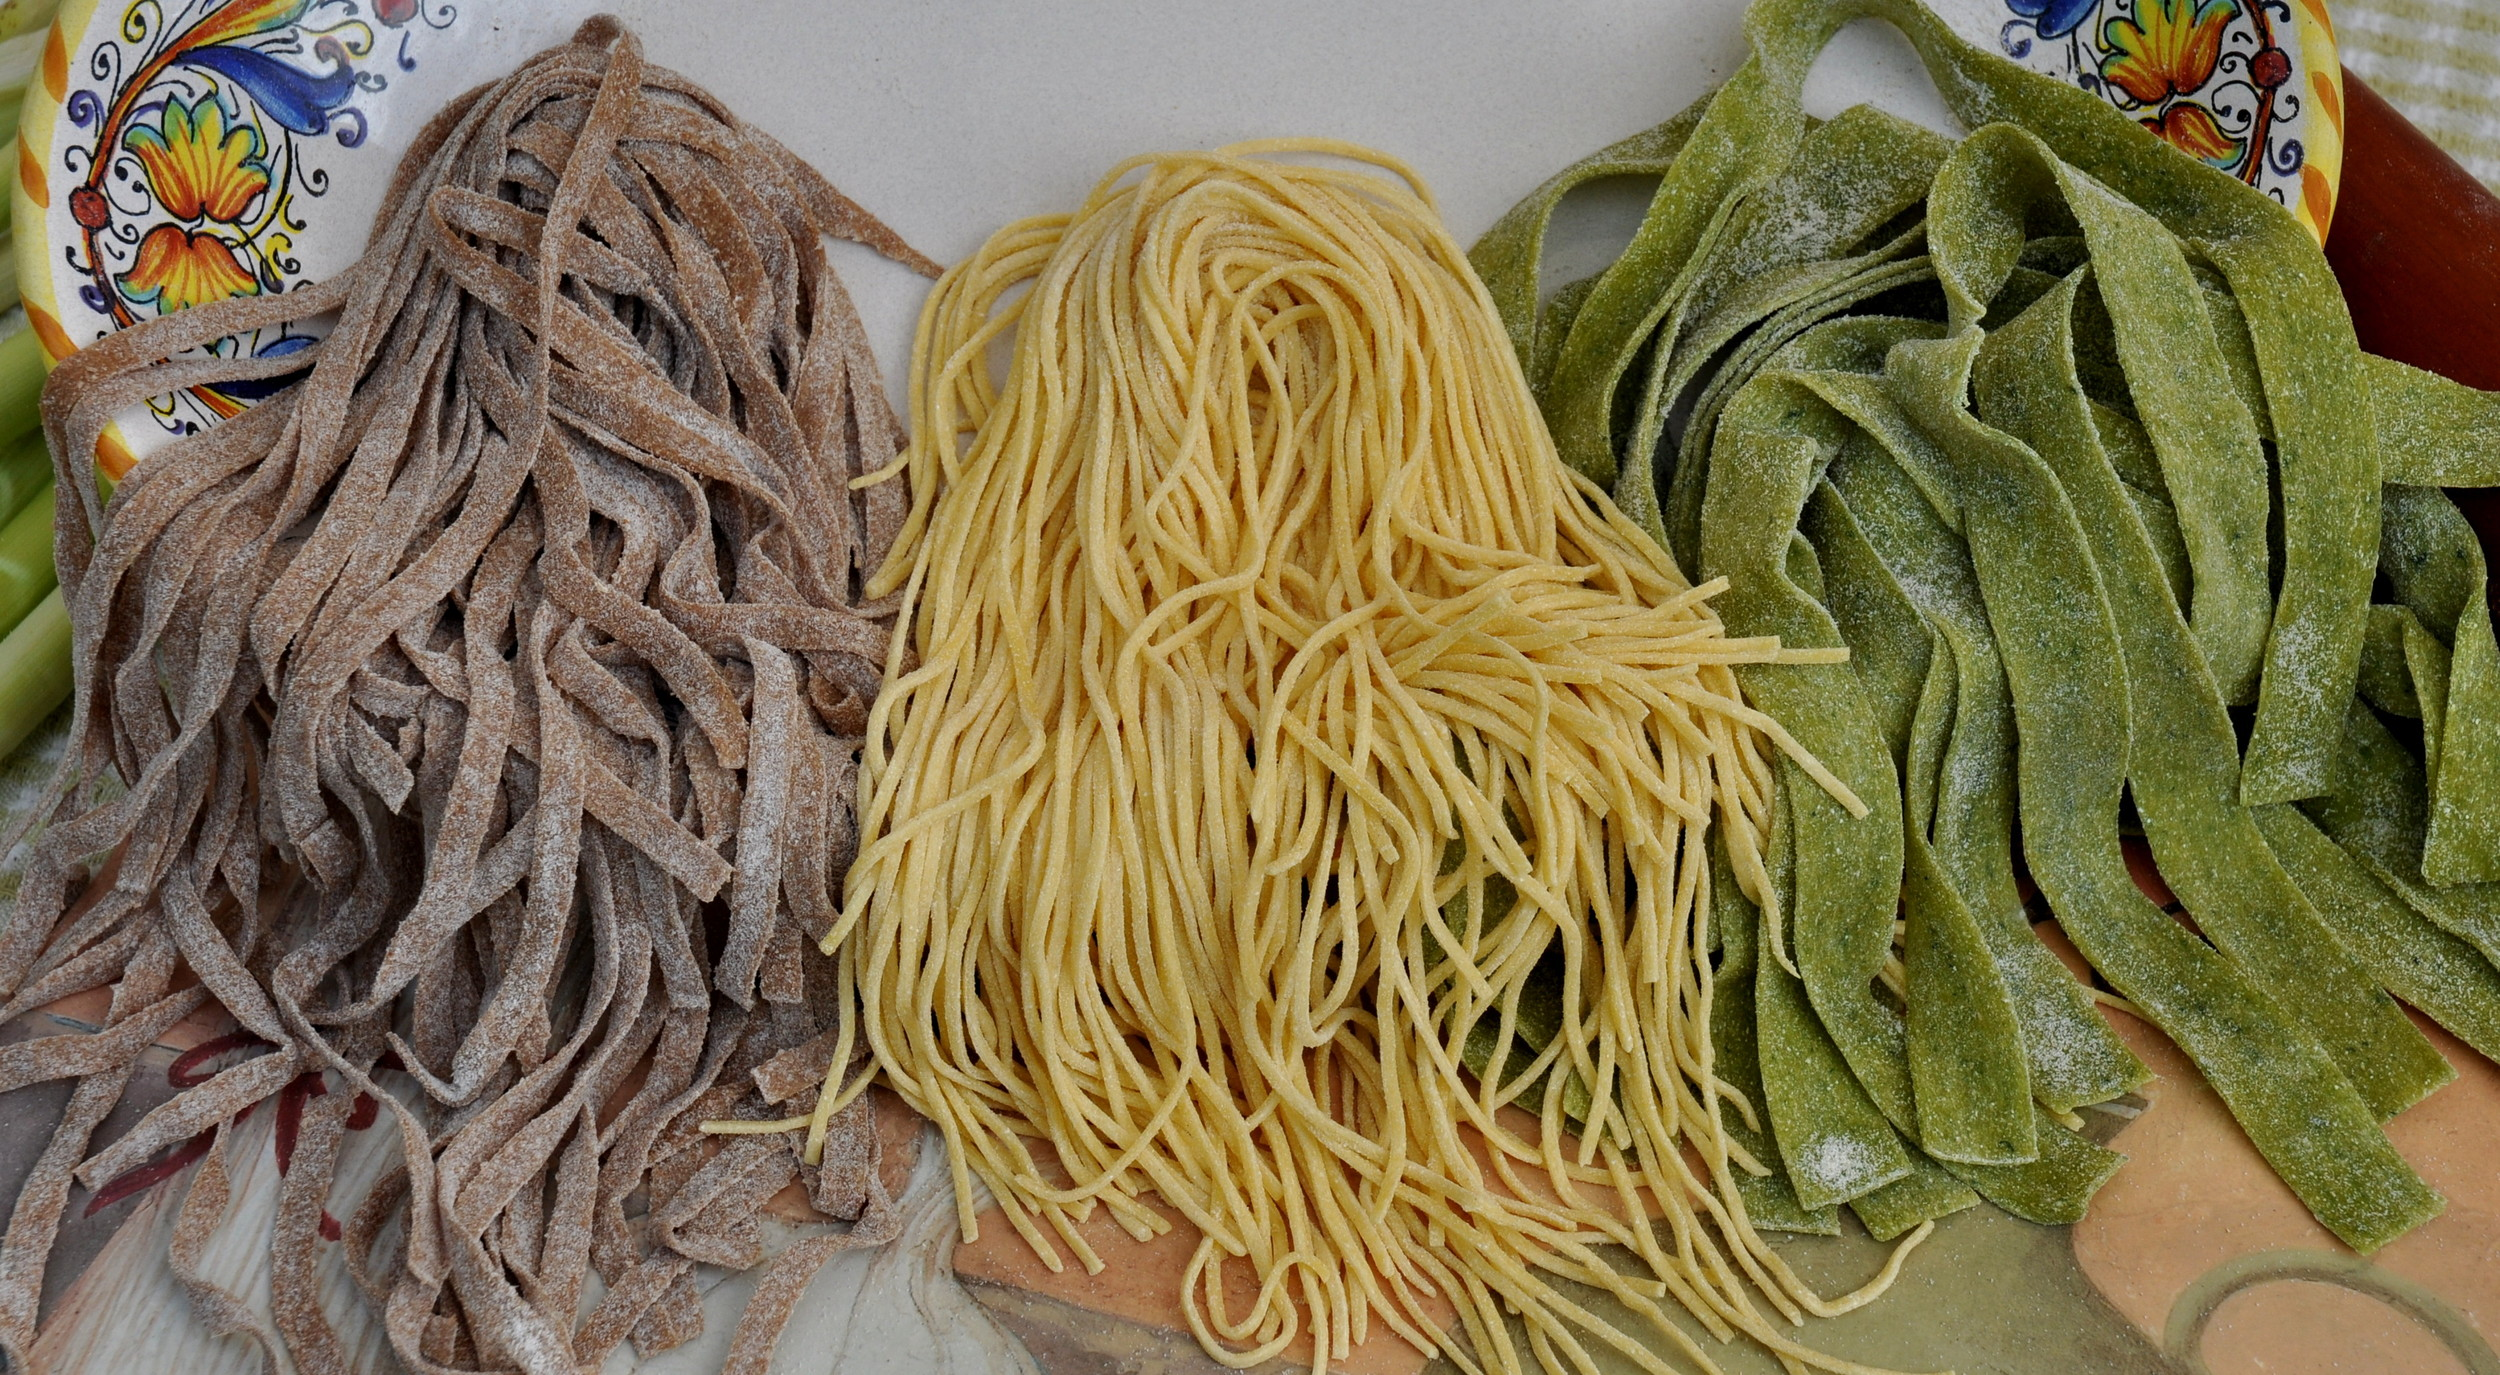 Fresh pastas from La Pasta. Photo copyright 2013 by Zachary D. Lyons.